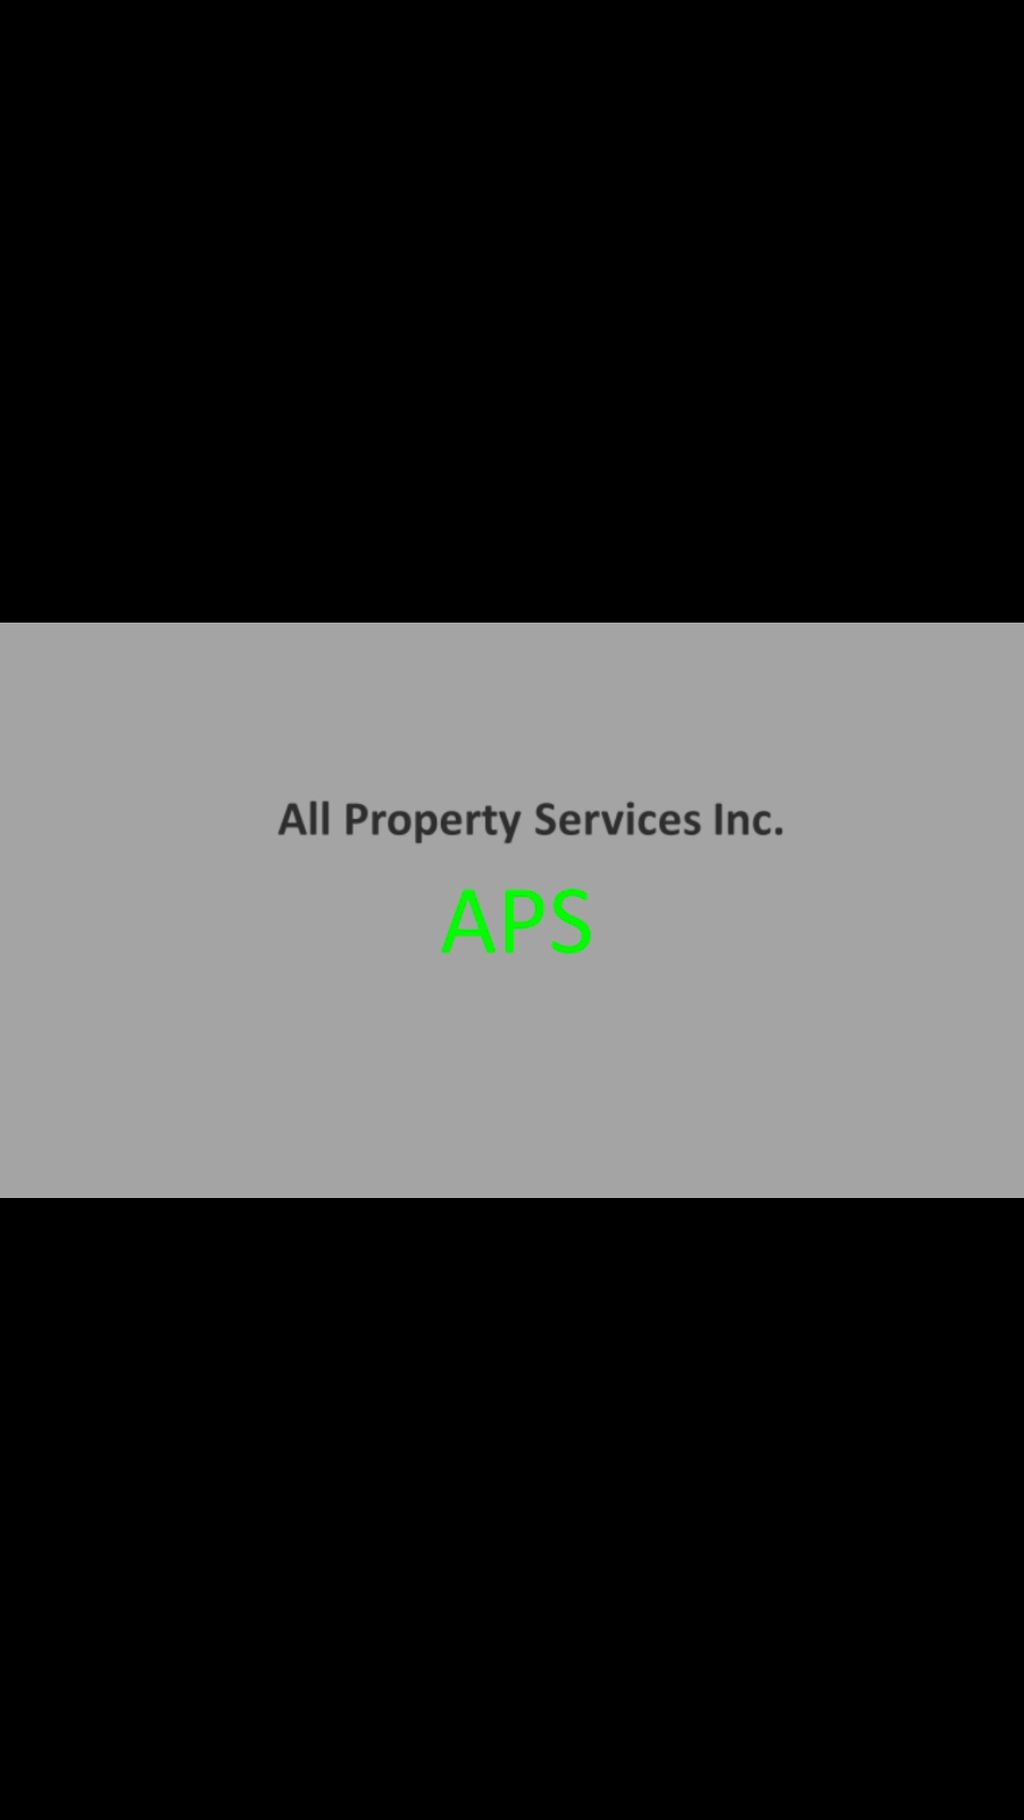 All Property Services Inc.